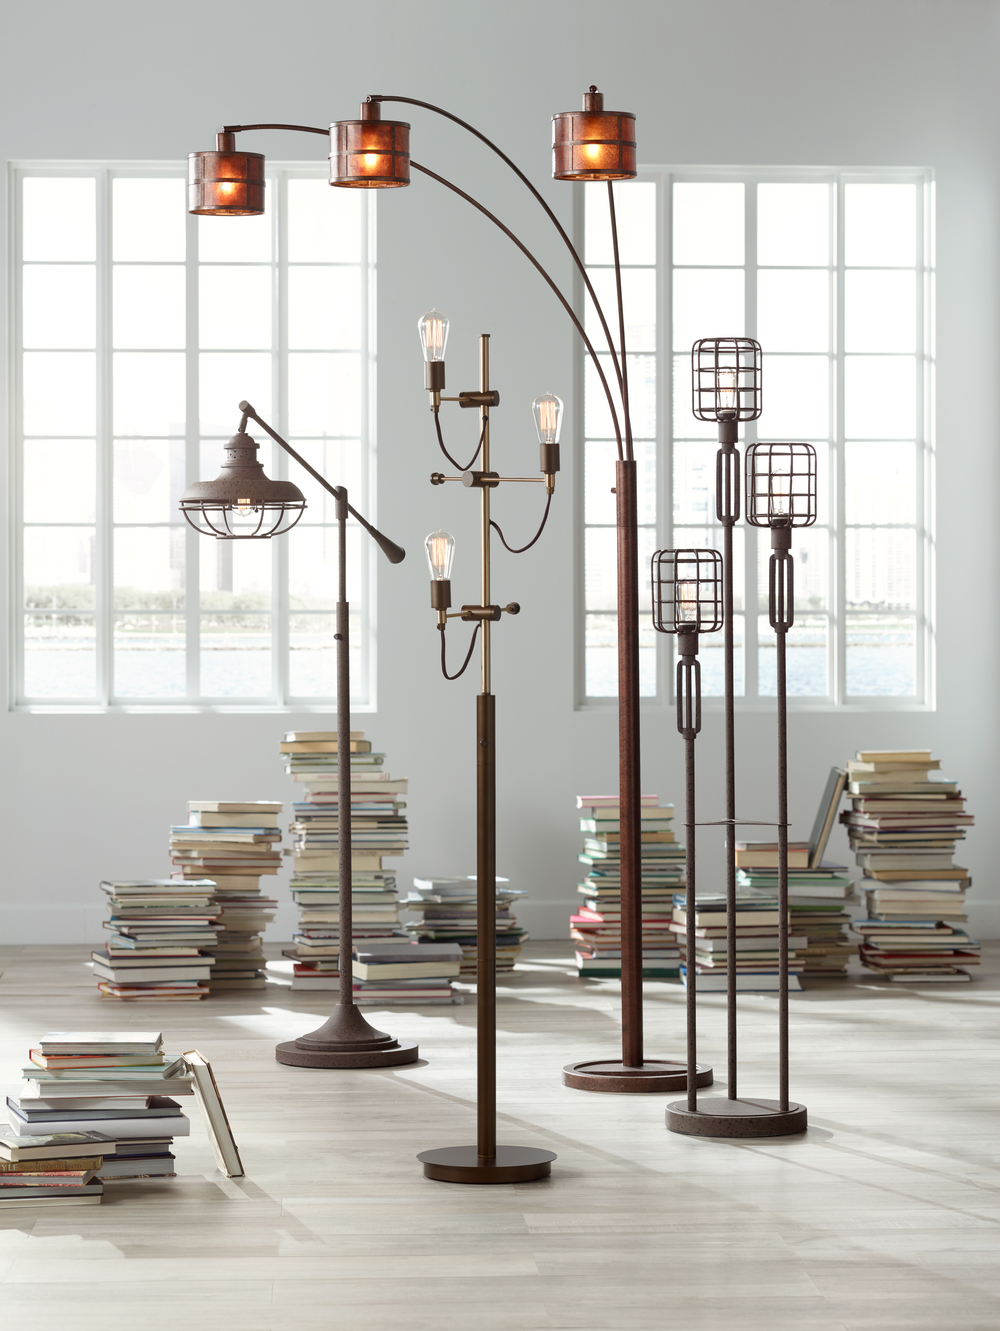 010716-transitional-floor-lamps-h.jpg